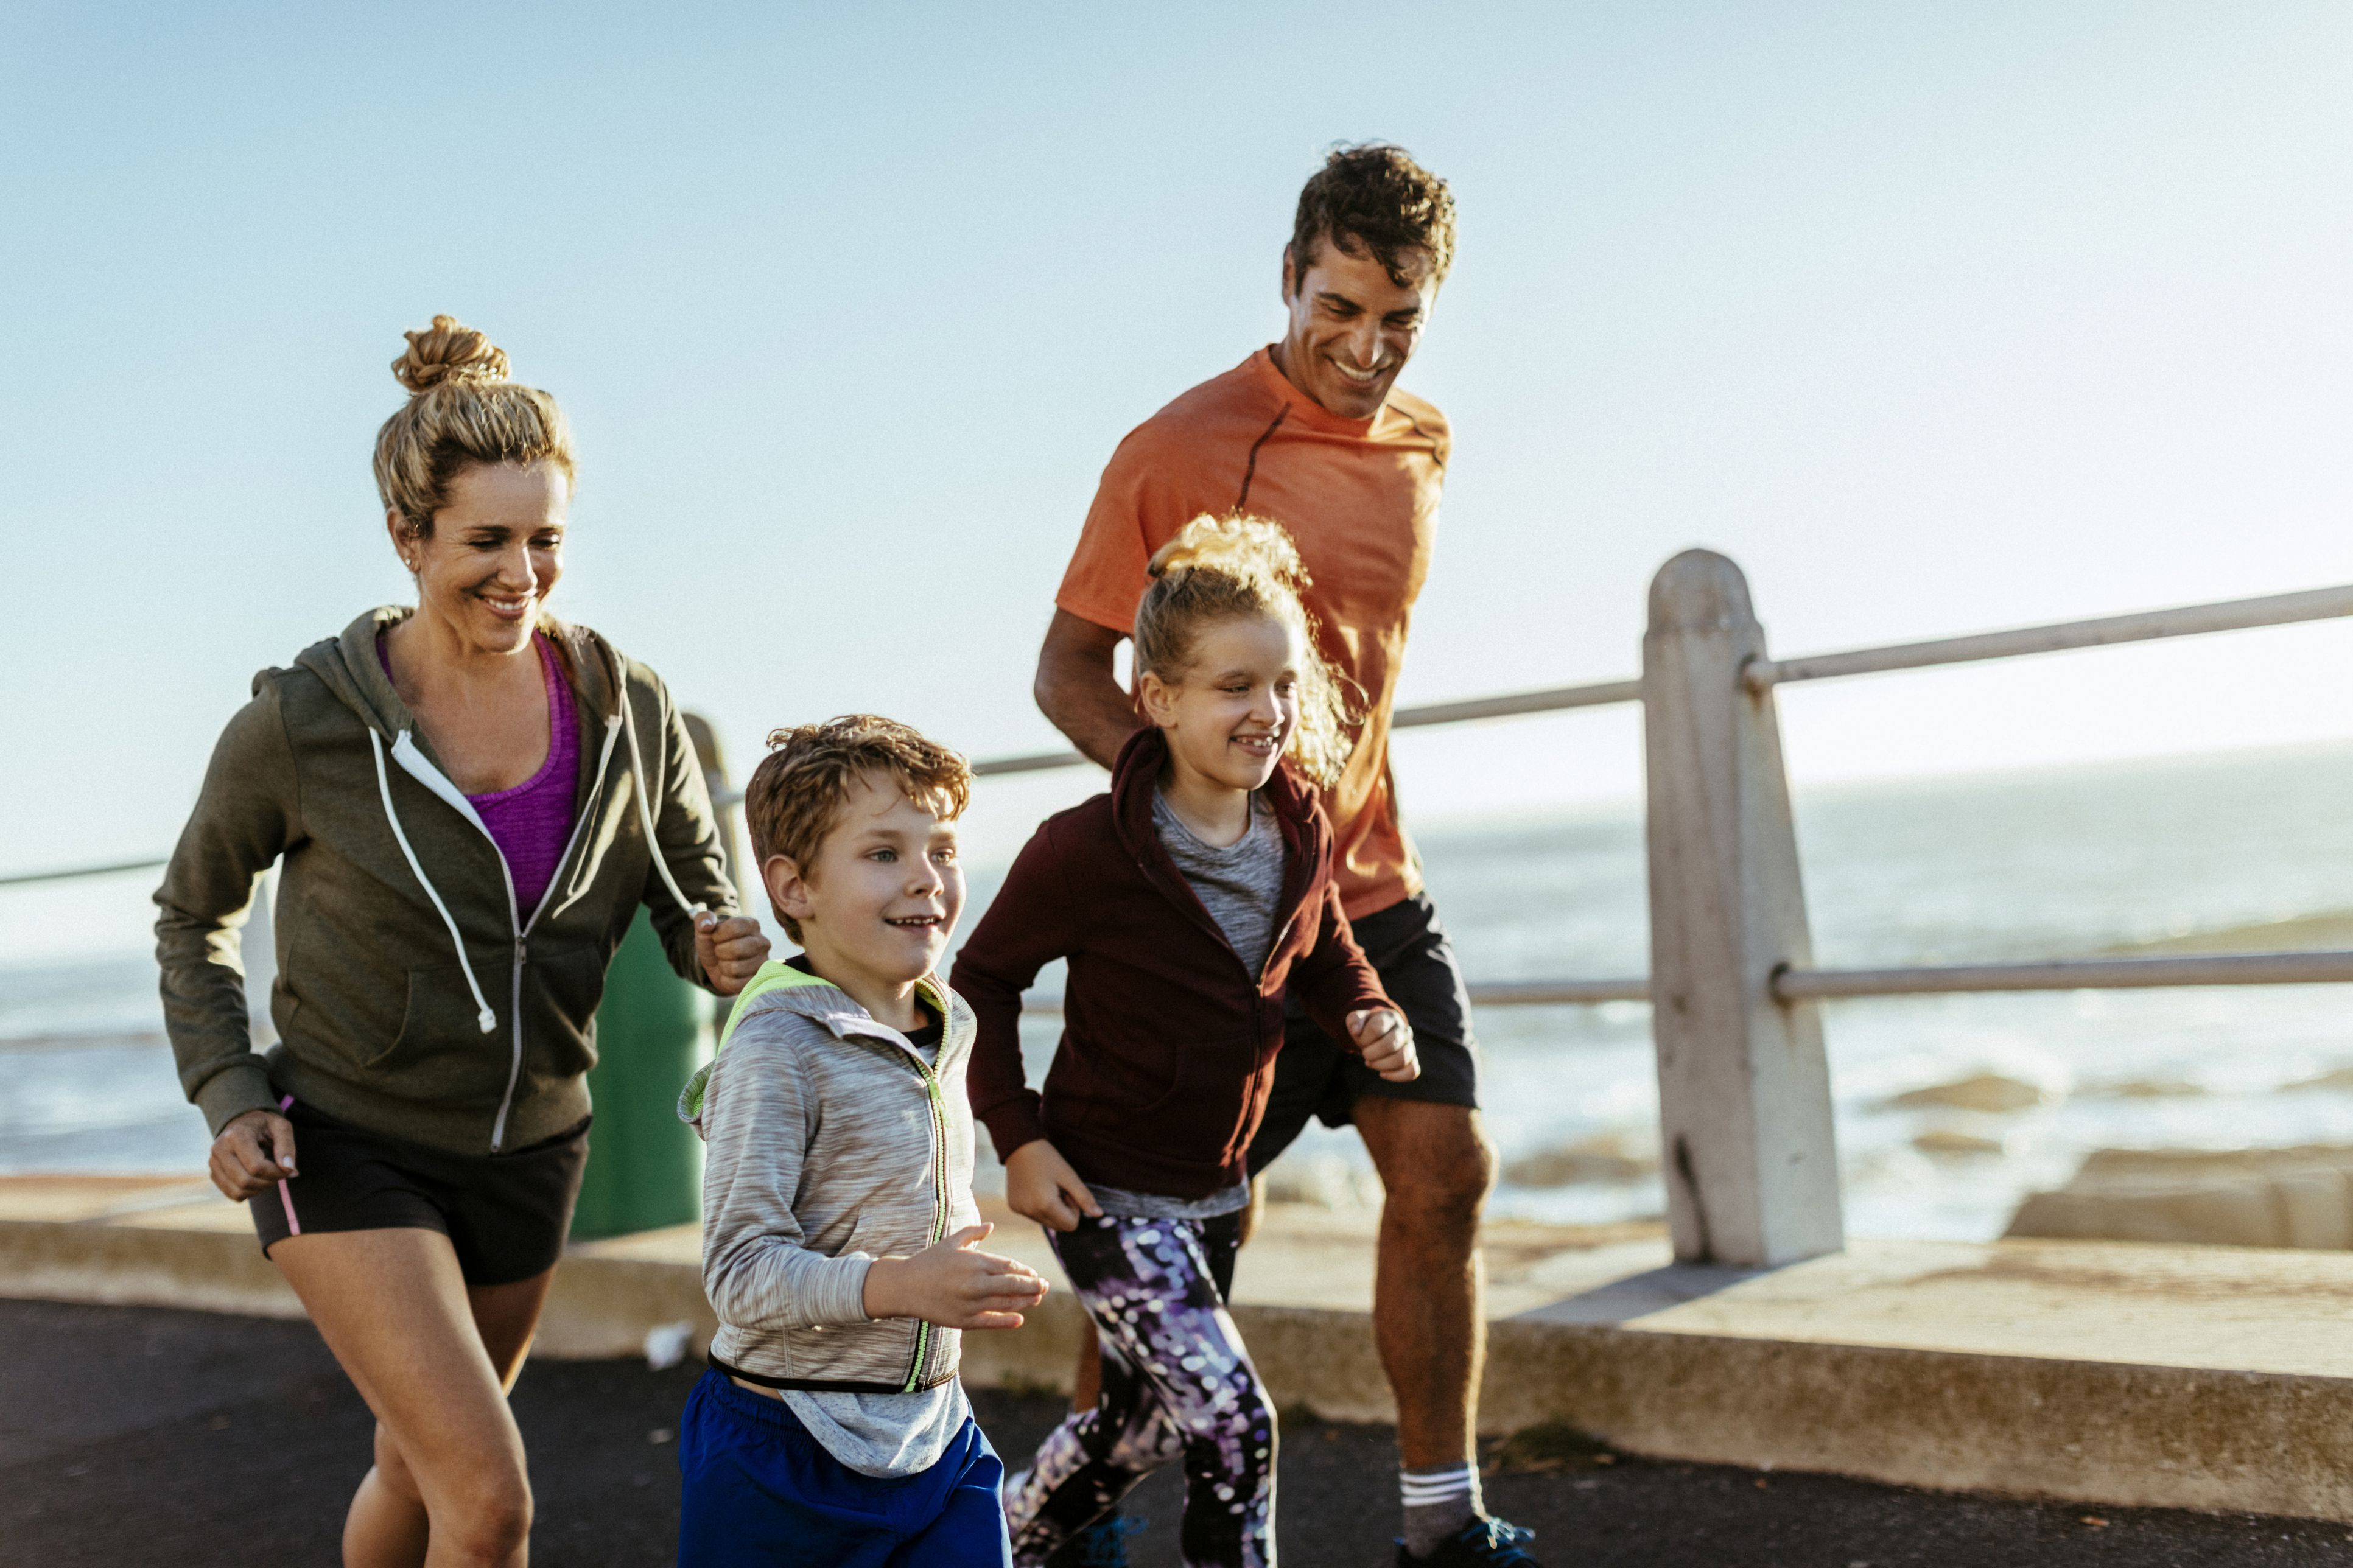 sports running fun doing run having children active sport kid staying fitness start tips mother age famille getty gettyimages benefits